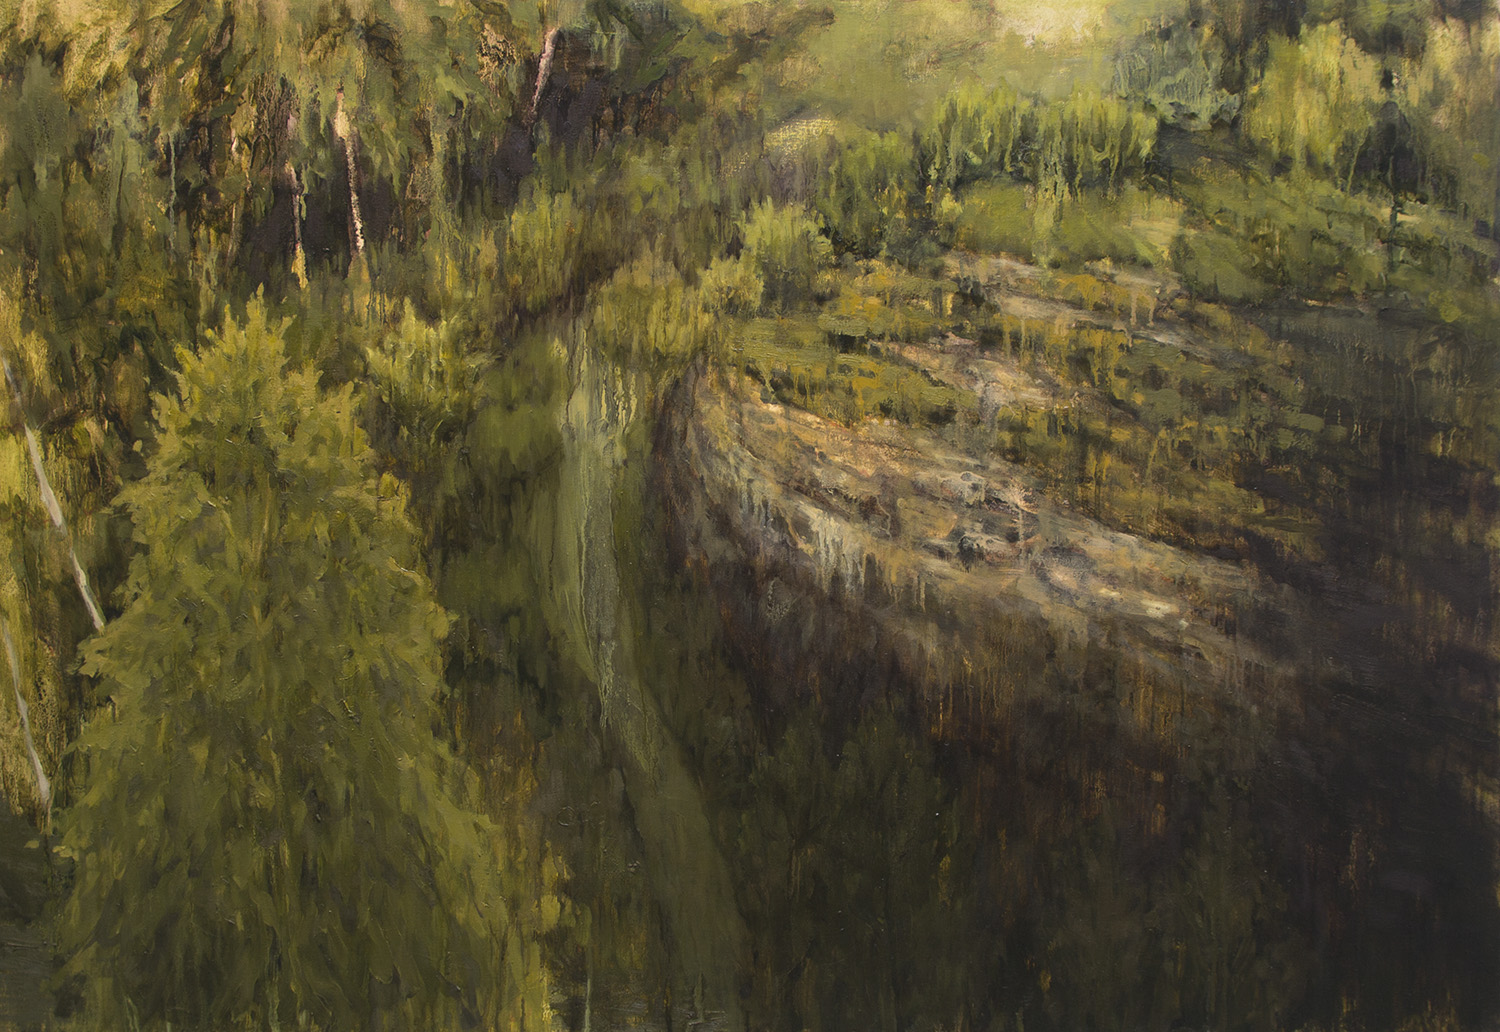 Death by Landscape, 2015, 33 x 48 inches, oil on canvas